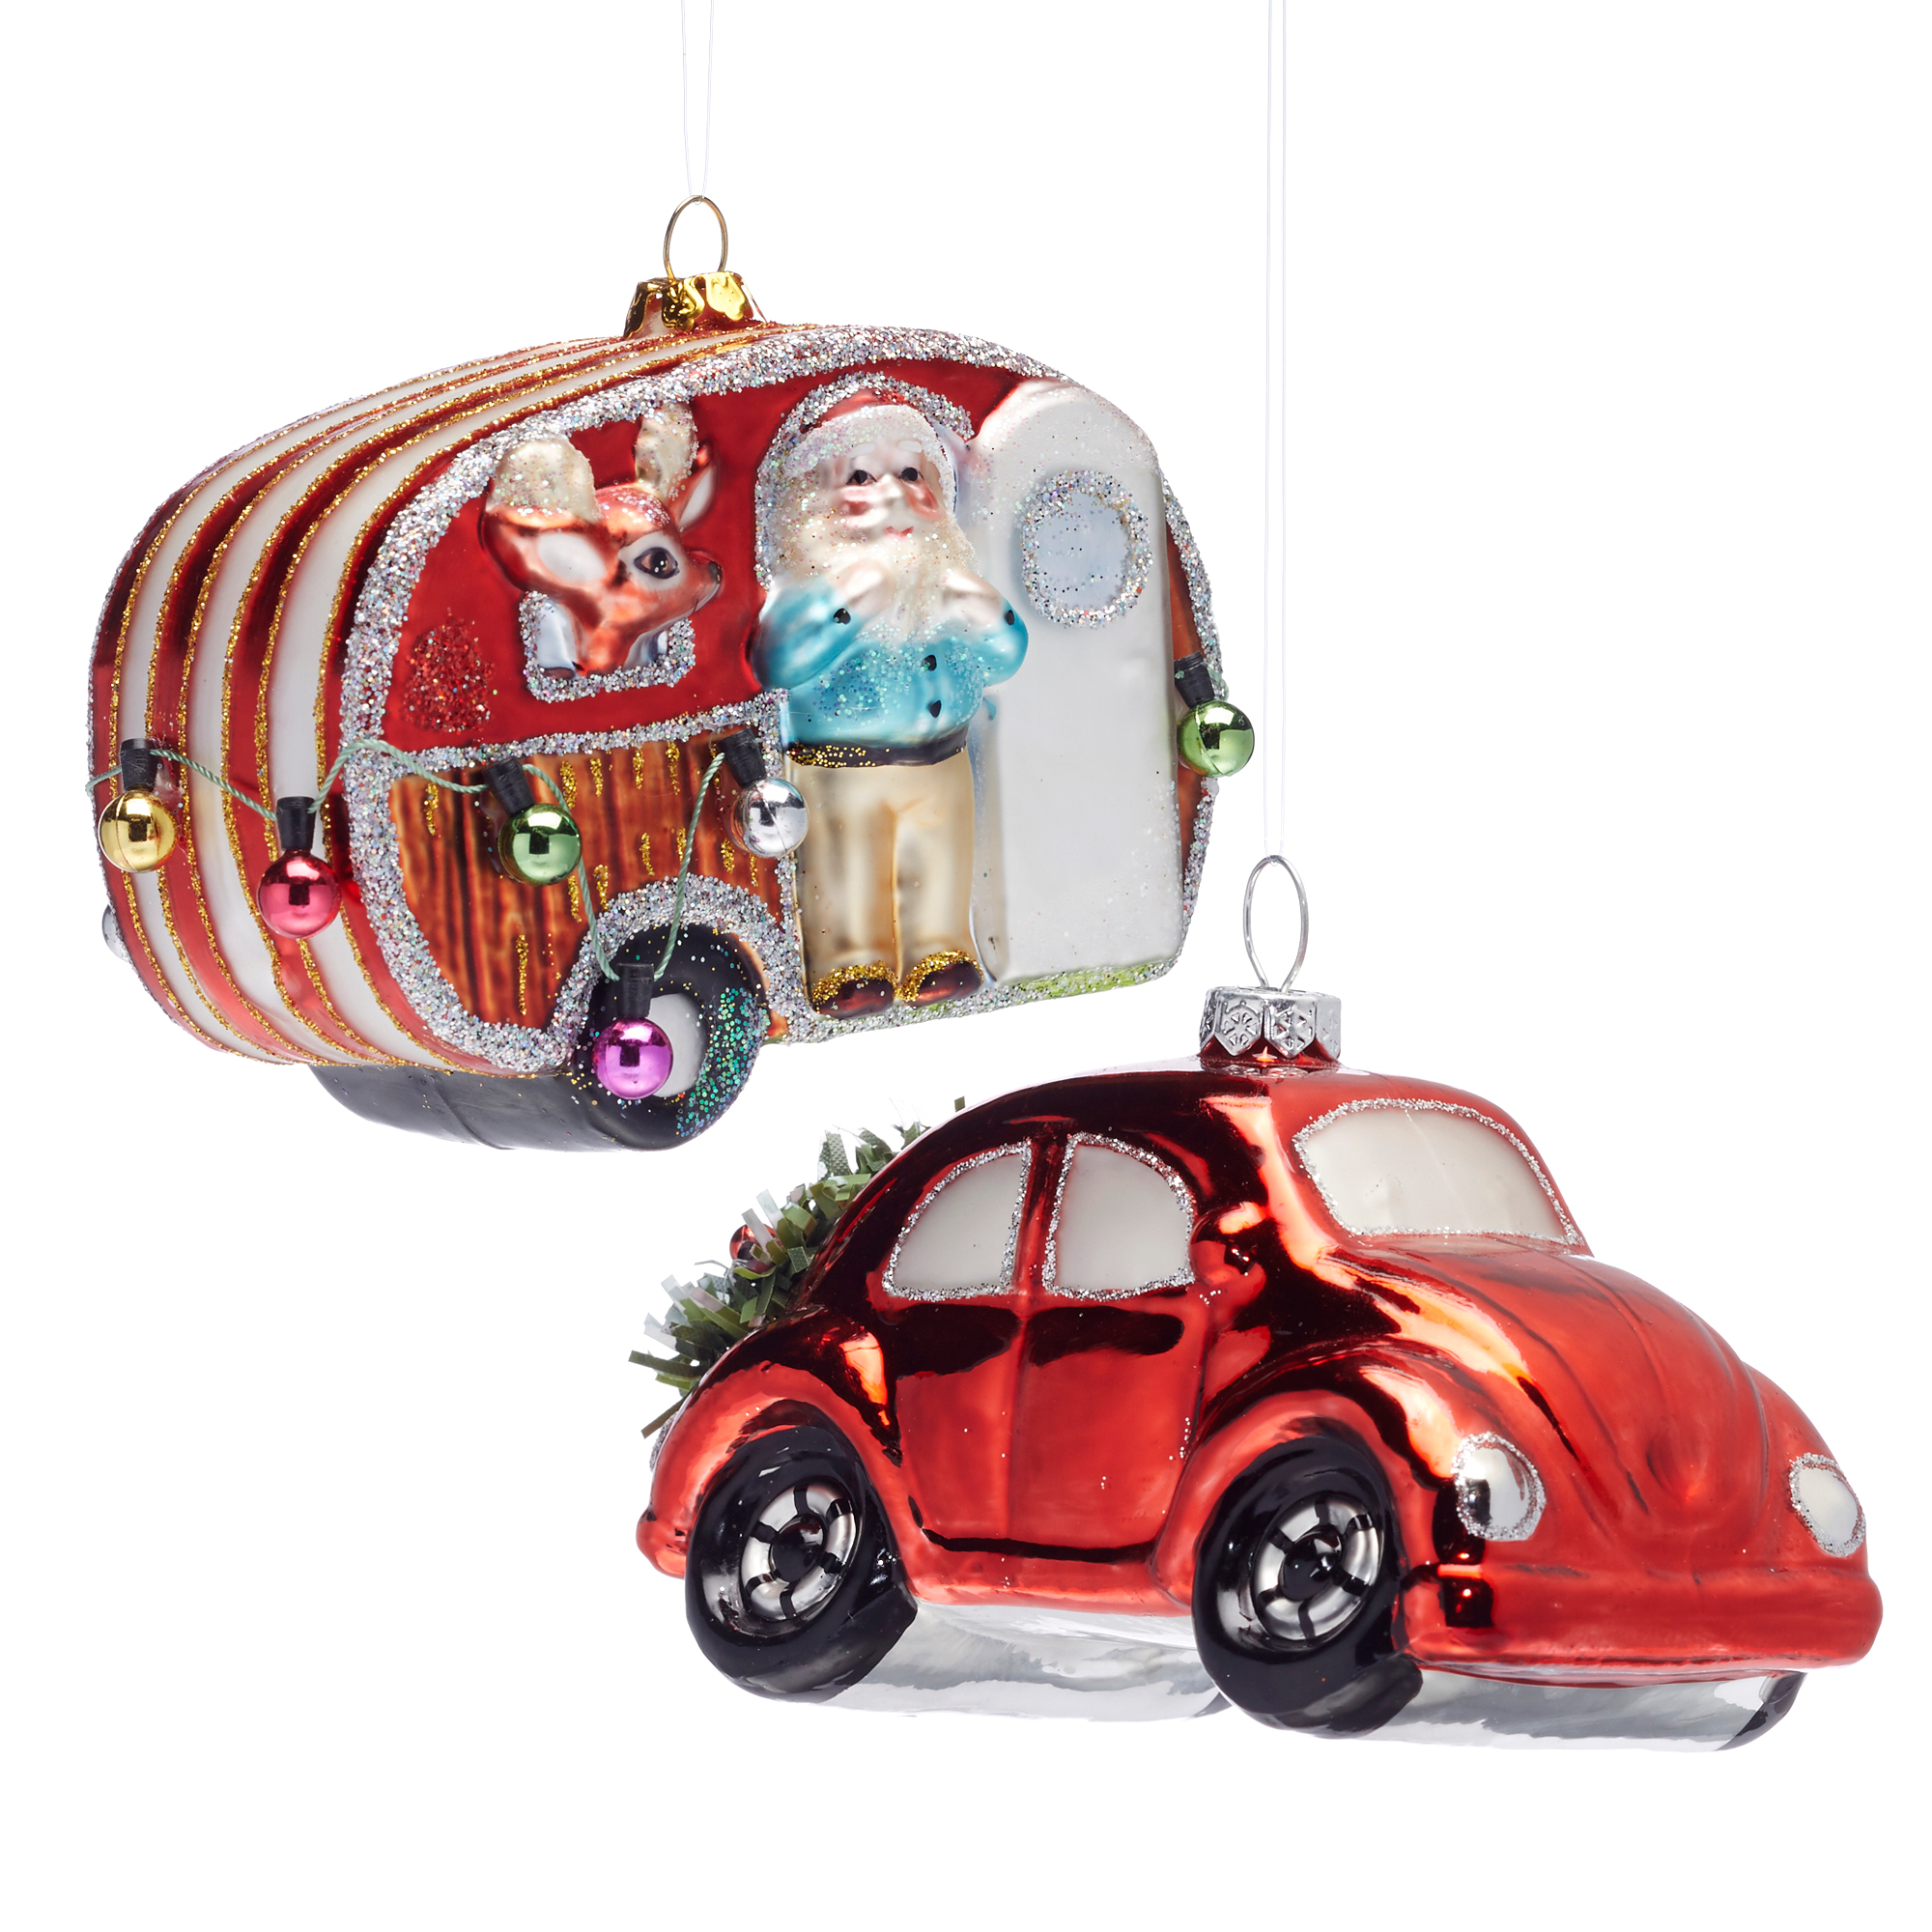 21st Century Trailer & Red Car Christmas Ornament